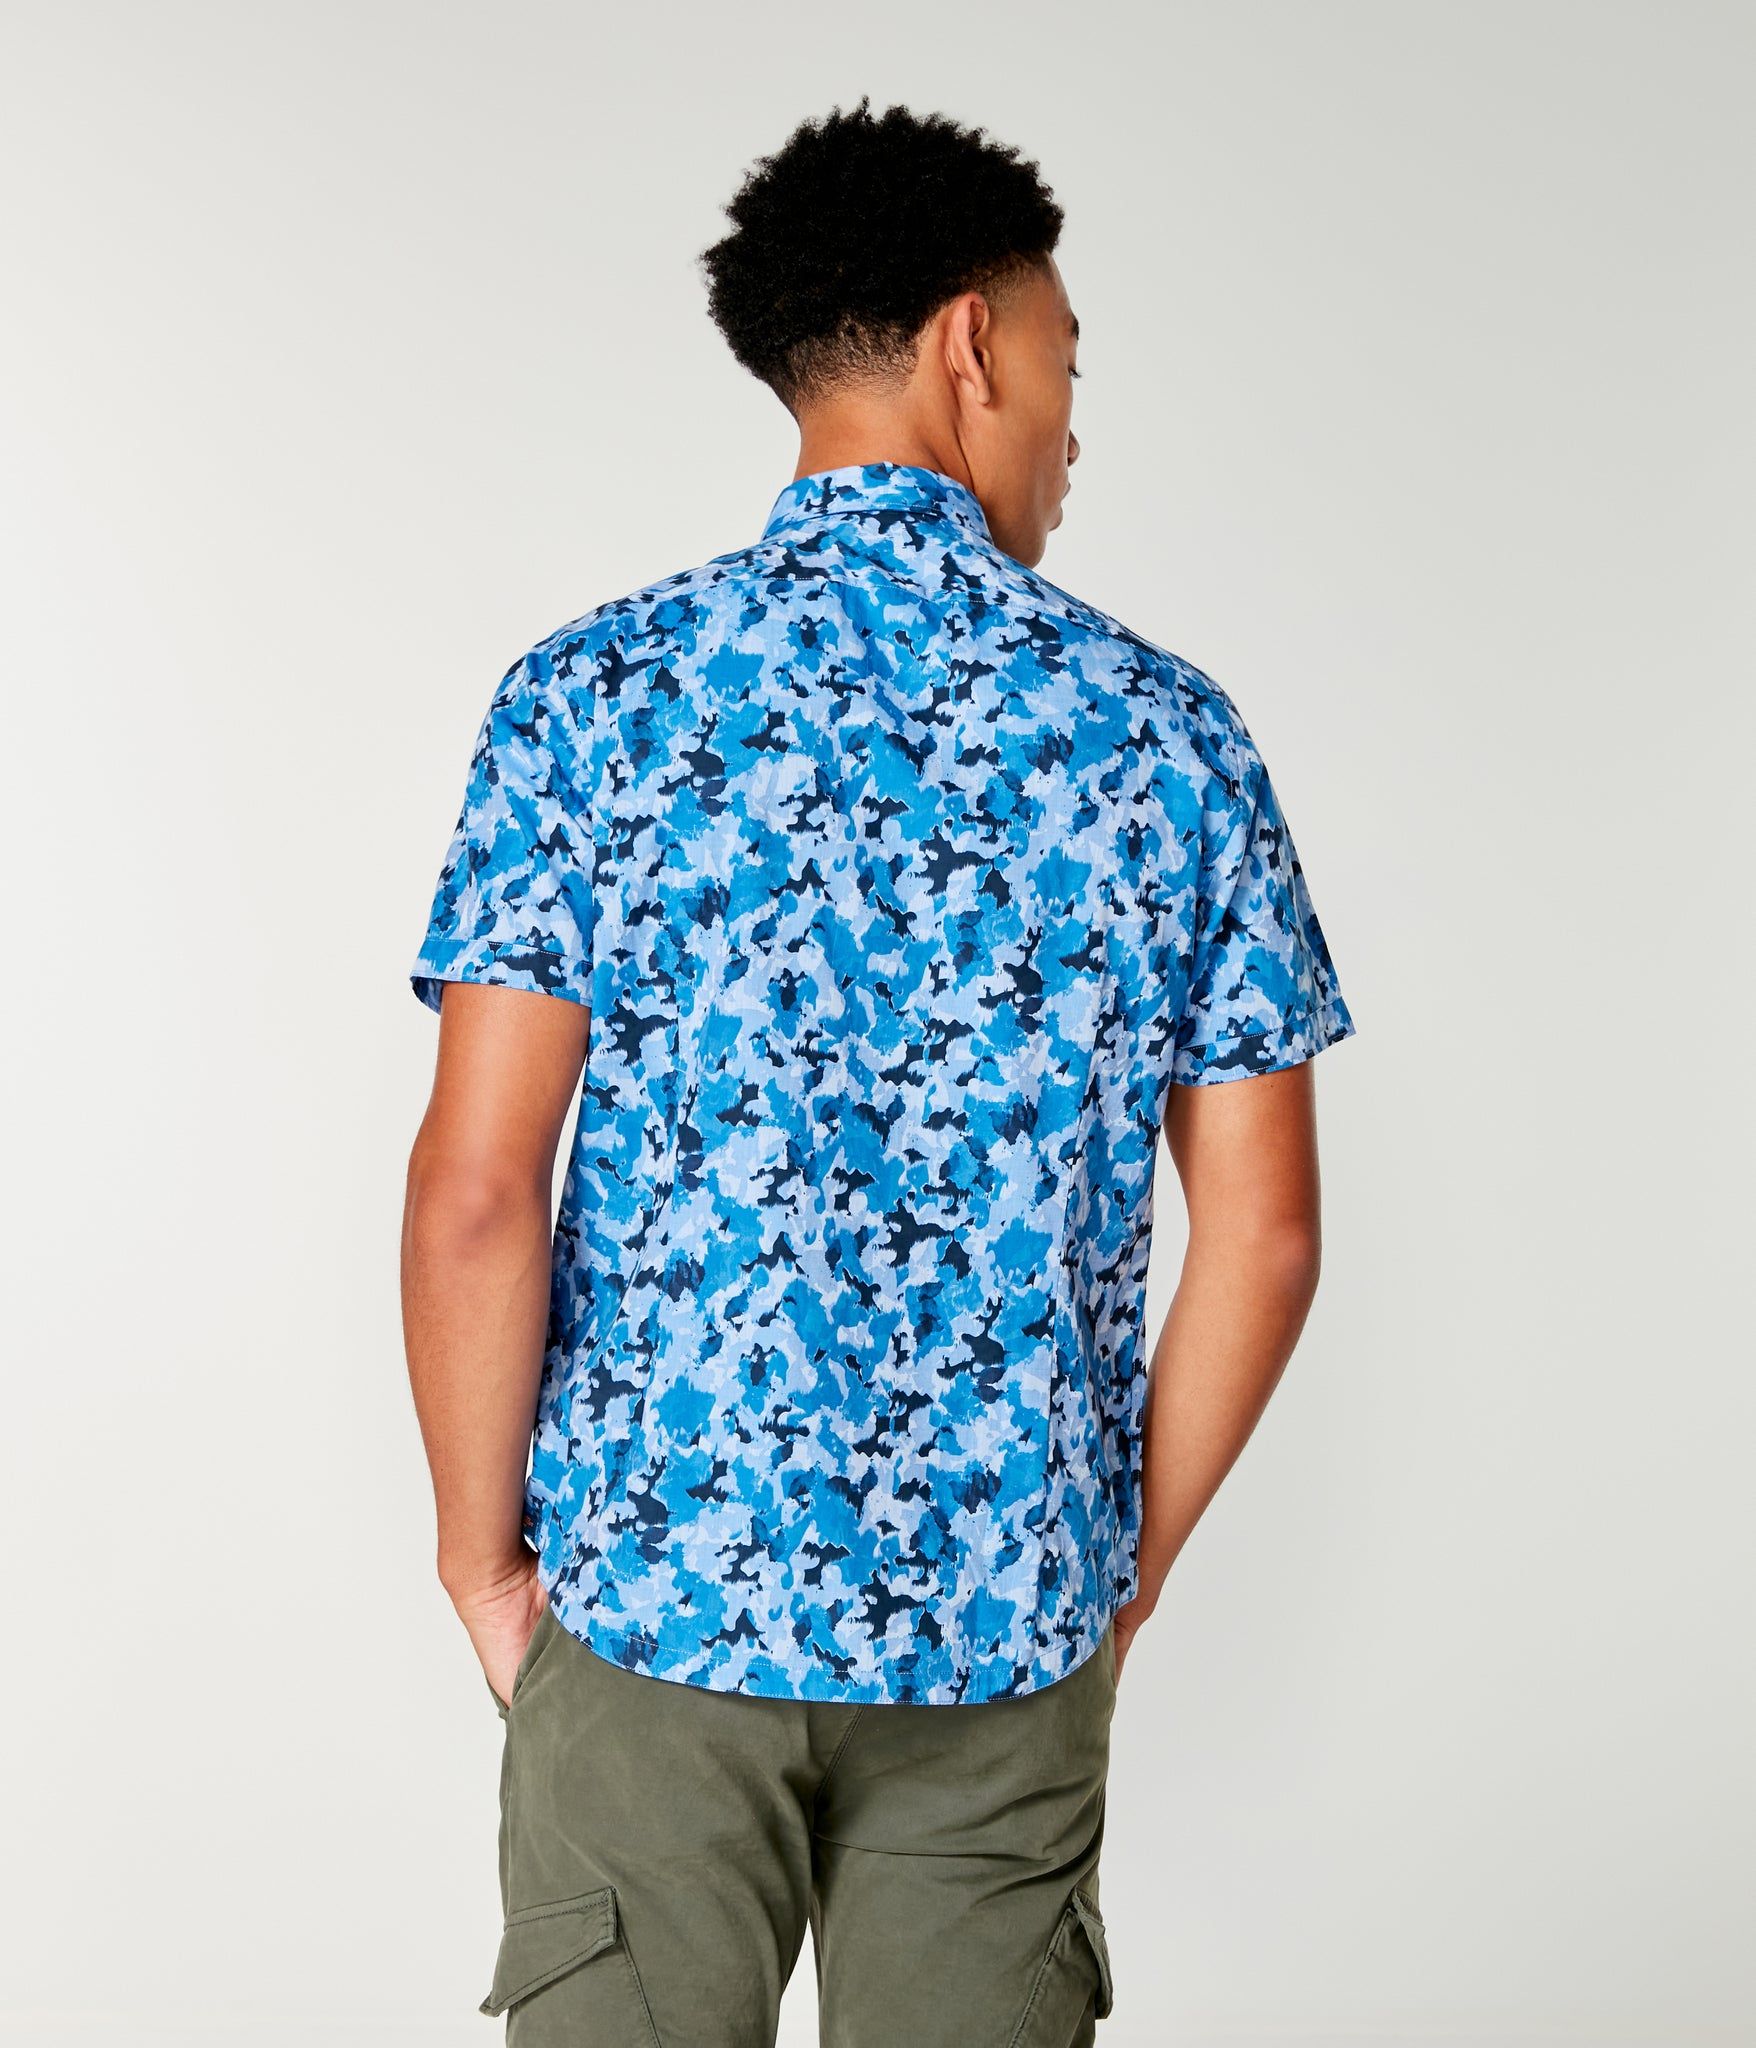 Woven On-Point Shirt - Indigo Mix Cayman Camo